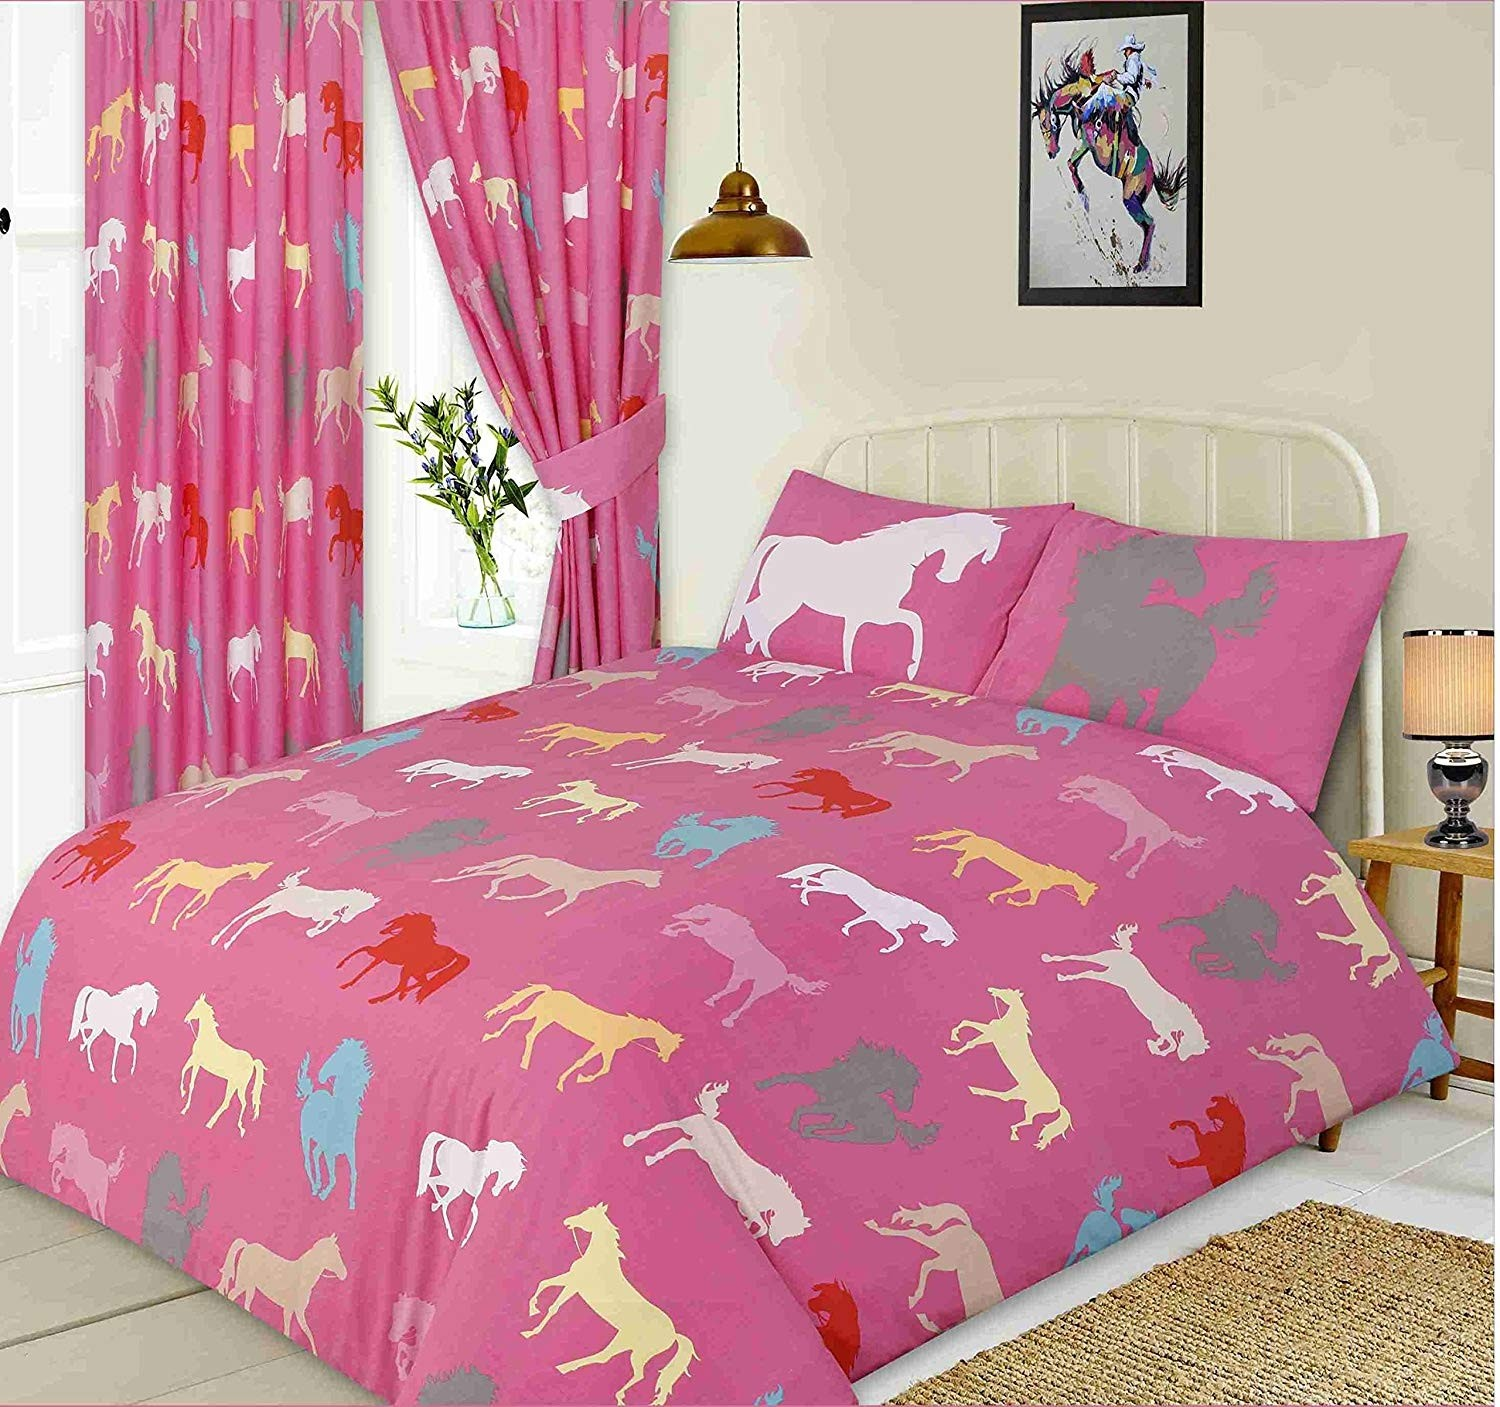 Horse Silhouette Design Pink Double Bed Duvet Cover Bedding Set